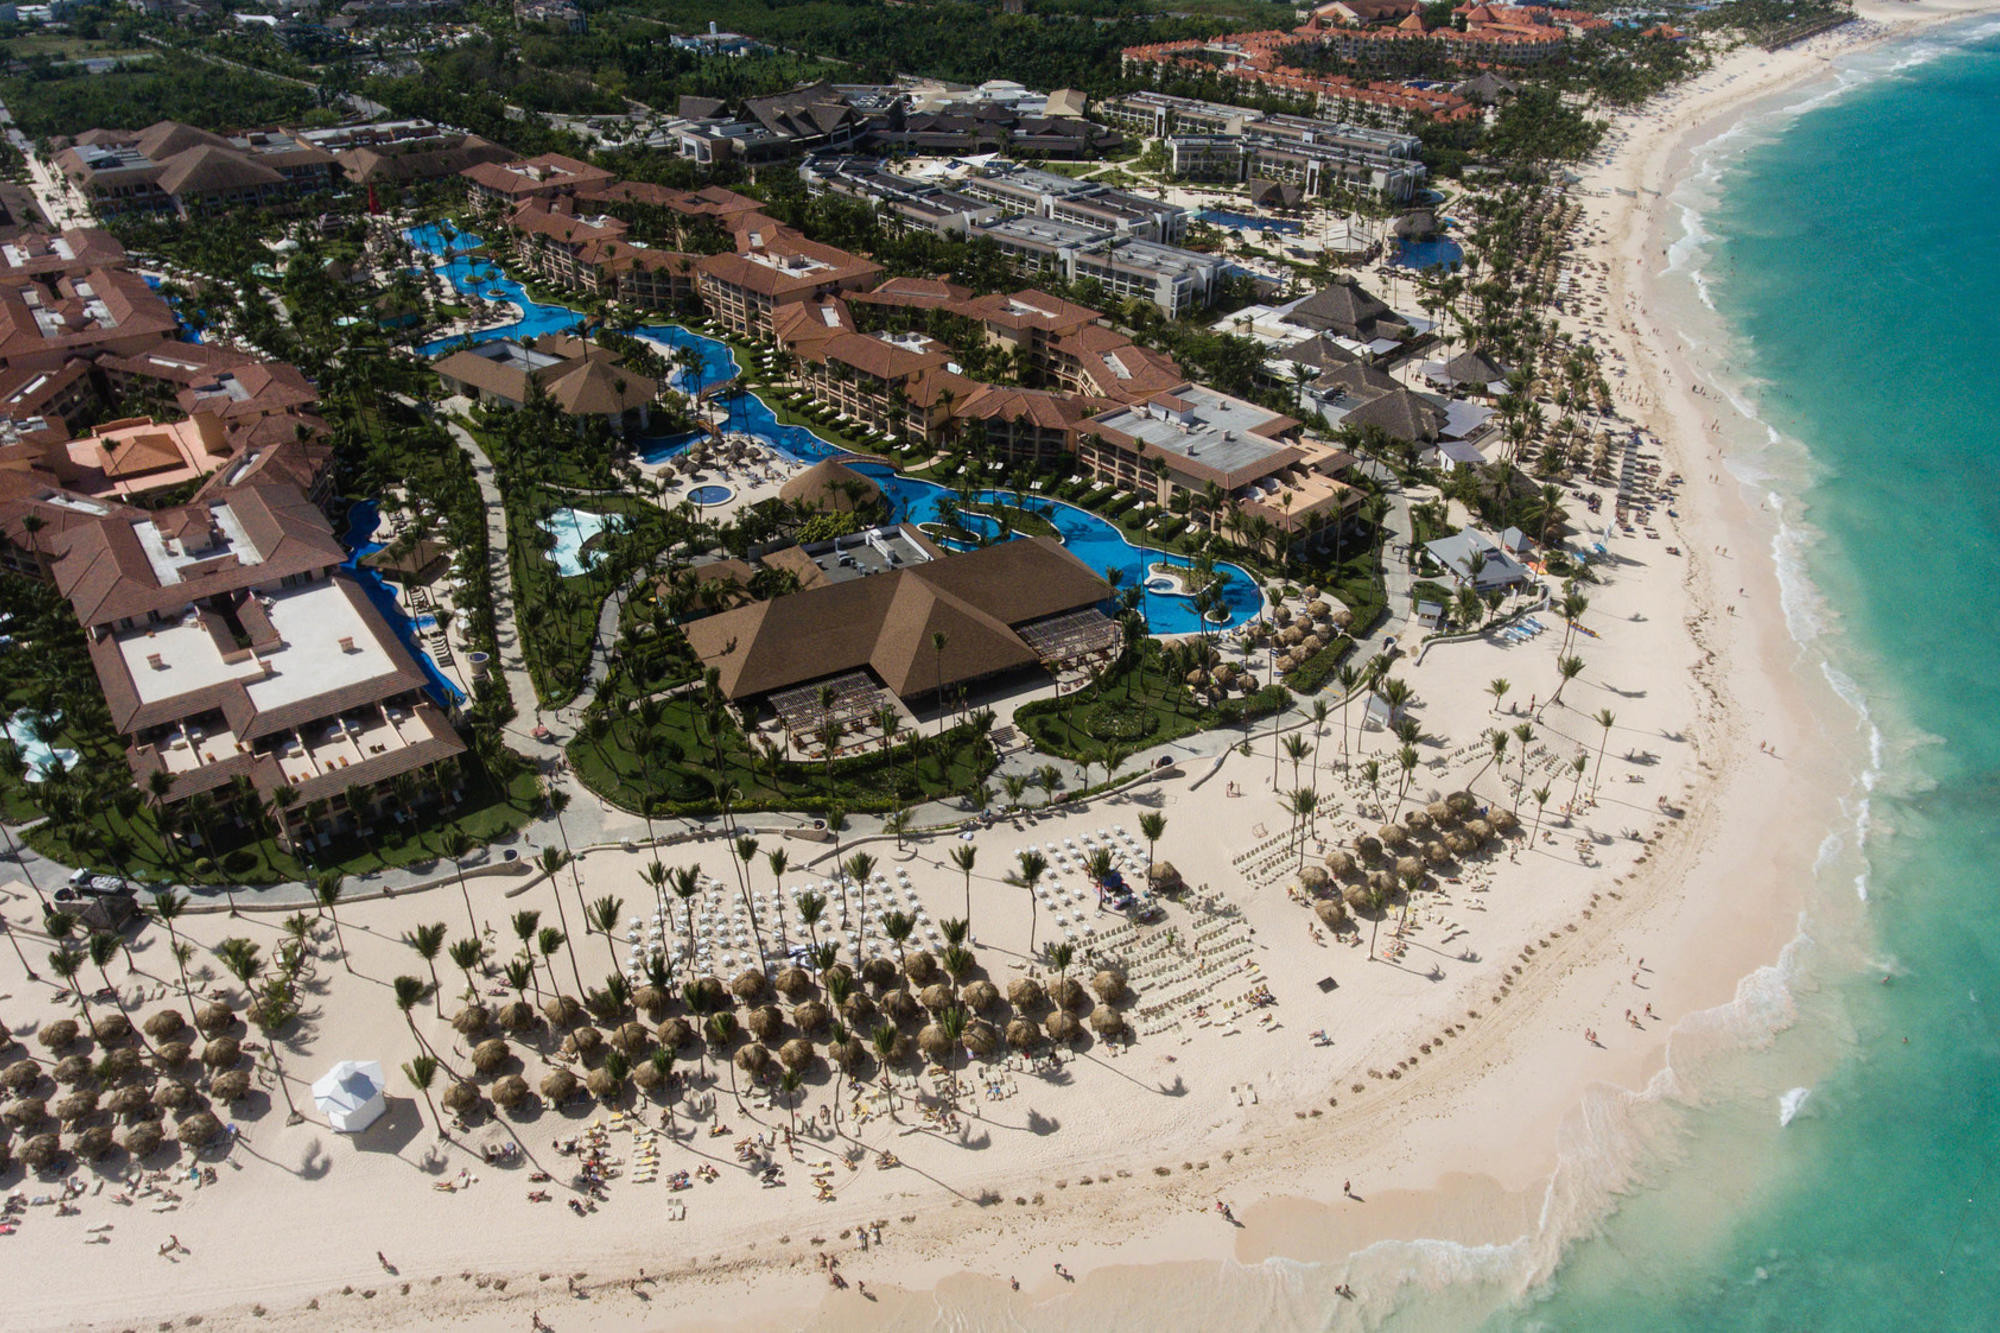 The Majestic Colonial Punta Cana